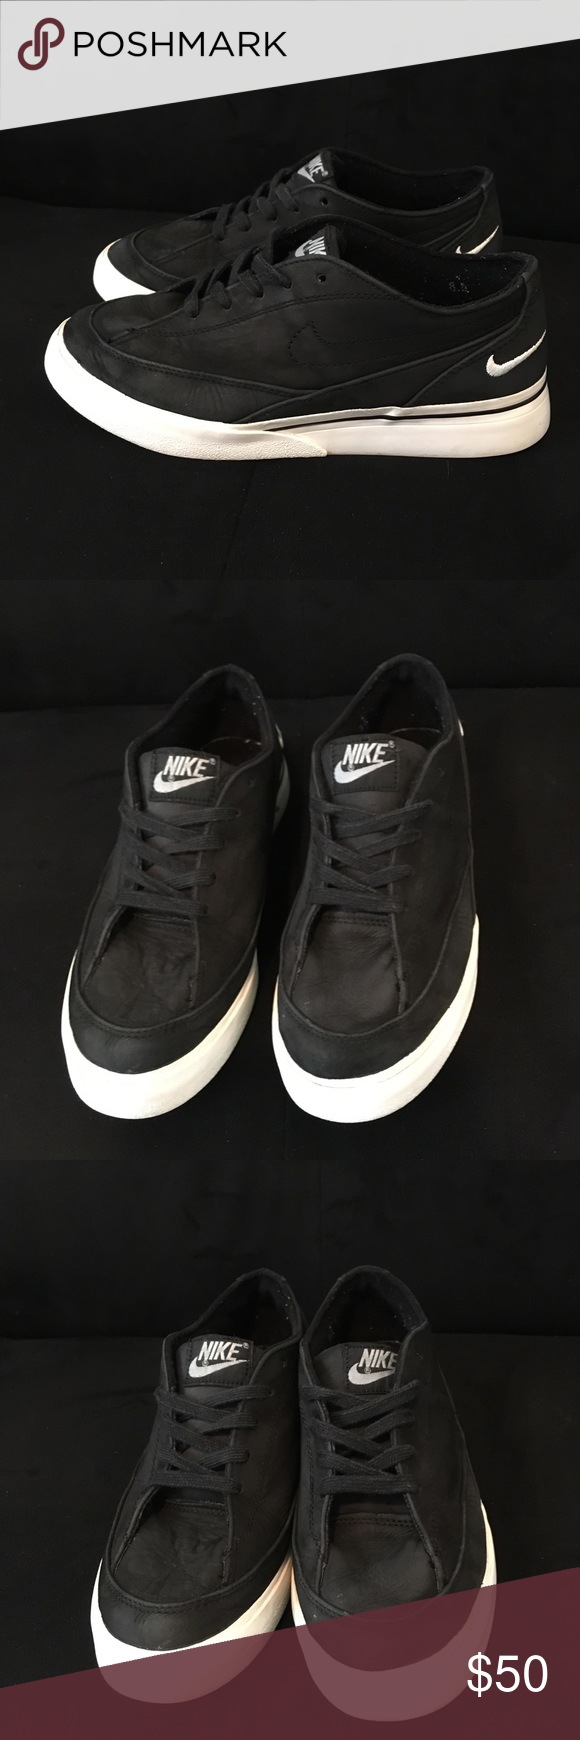 Nike Court Royale Low Top Sneaker Nike Court Royale Low Top Sneaker Black/Black Good Condition  All offers are welcome Nike Shoes Sneakers #woodyandbobeep